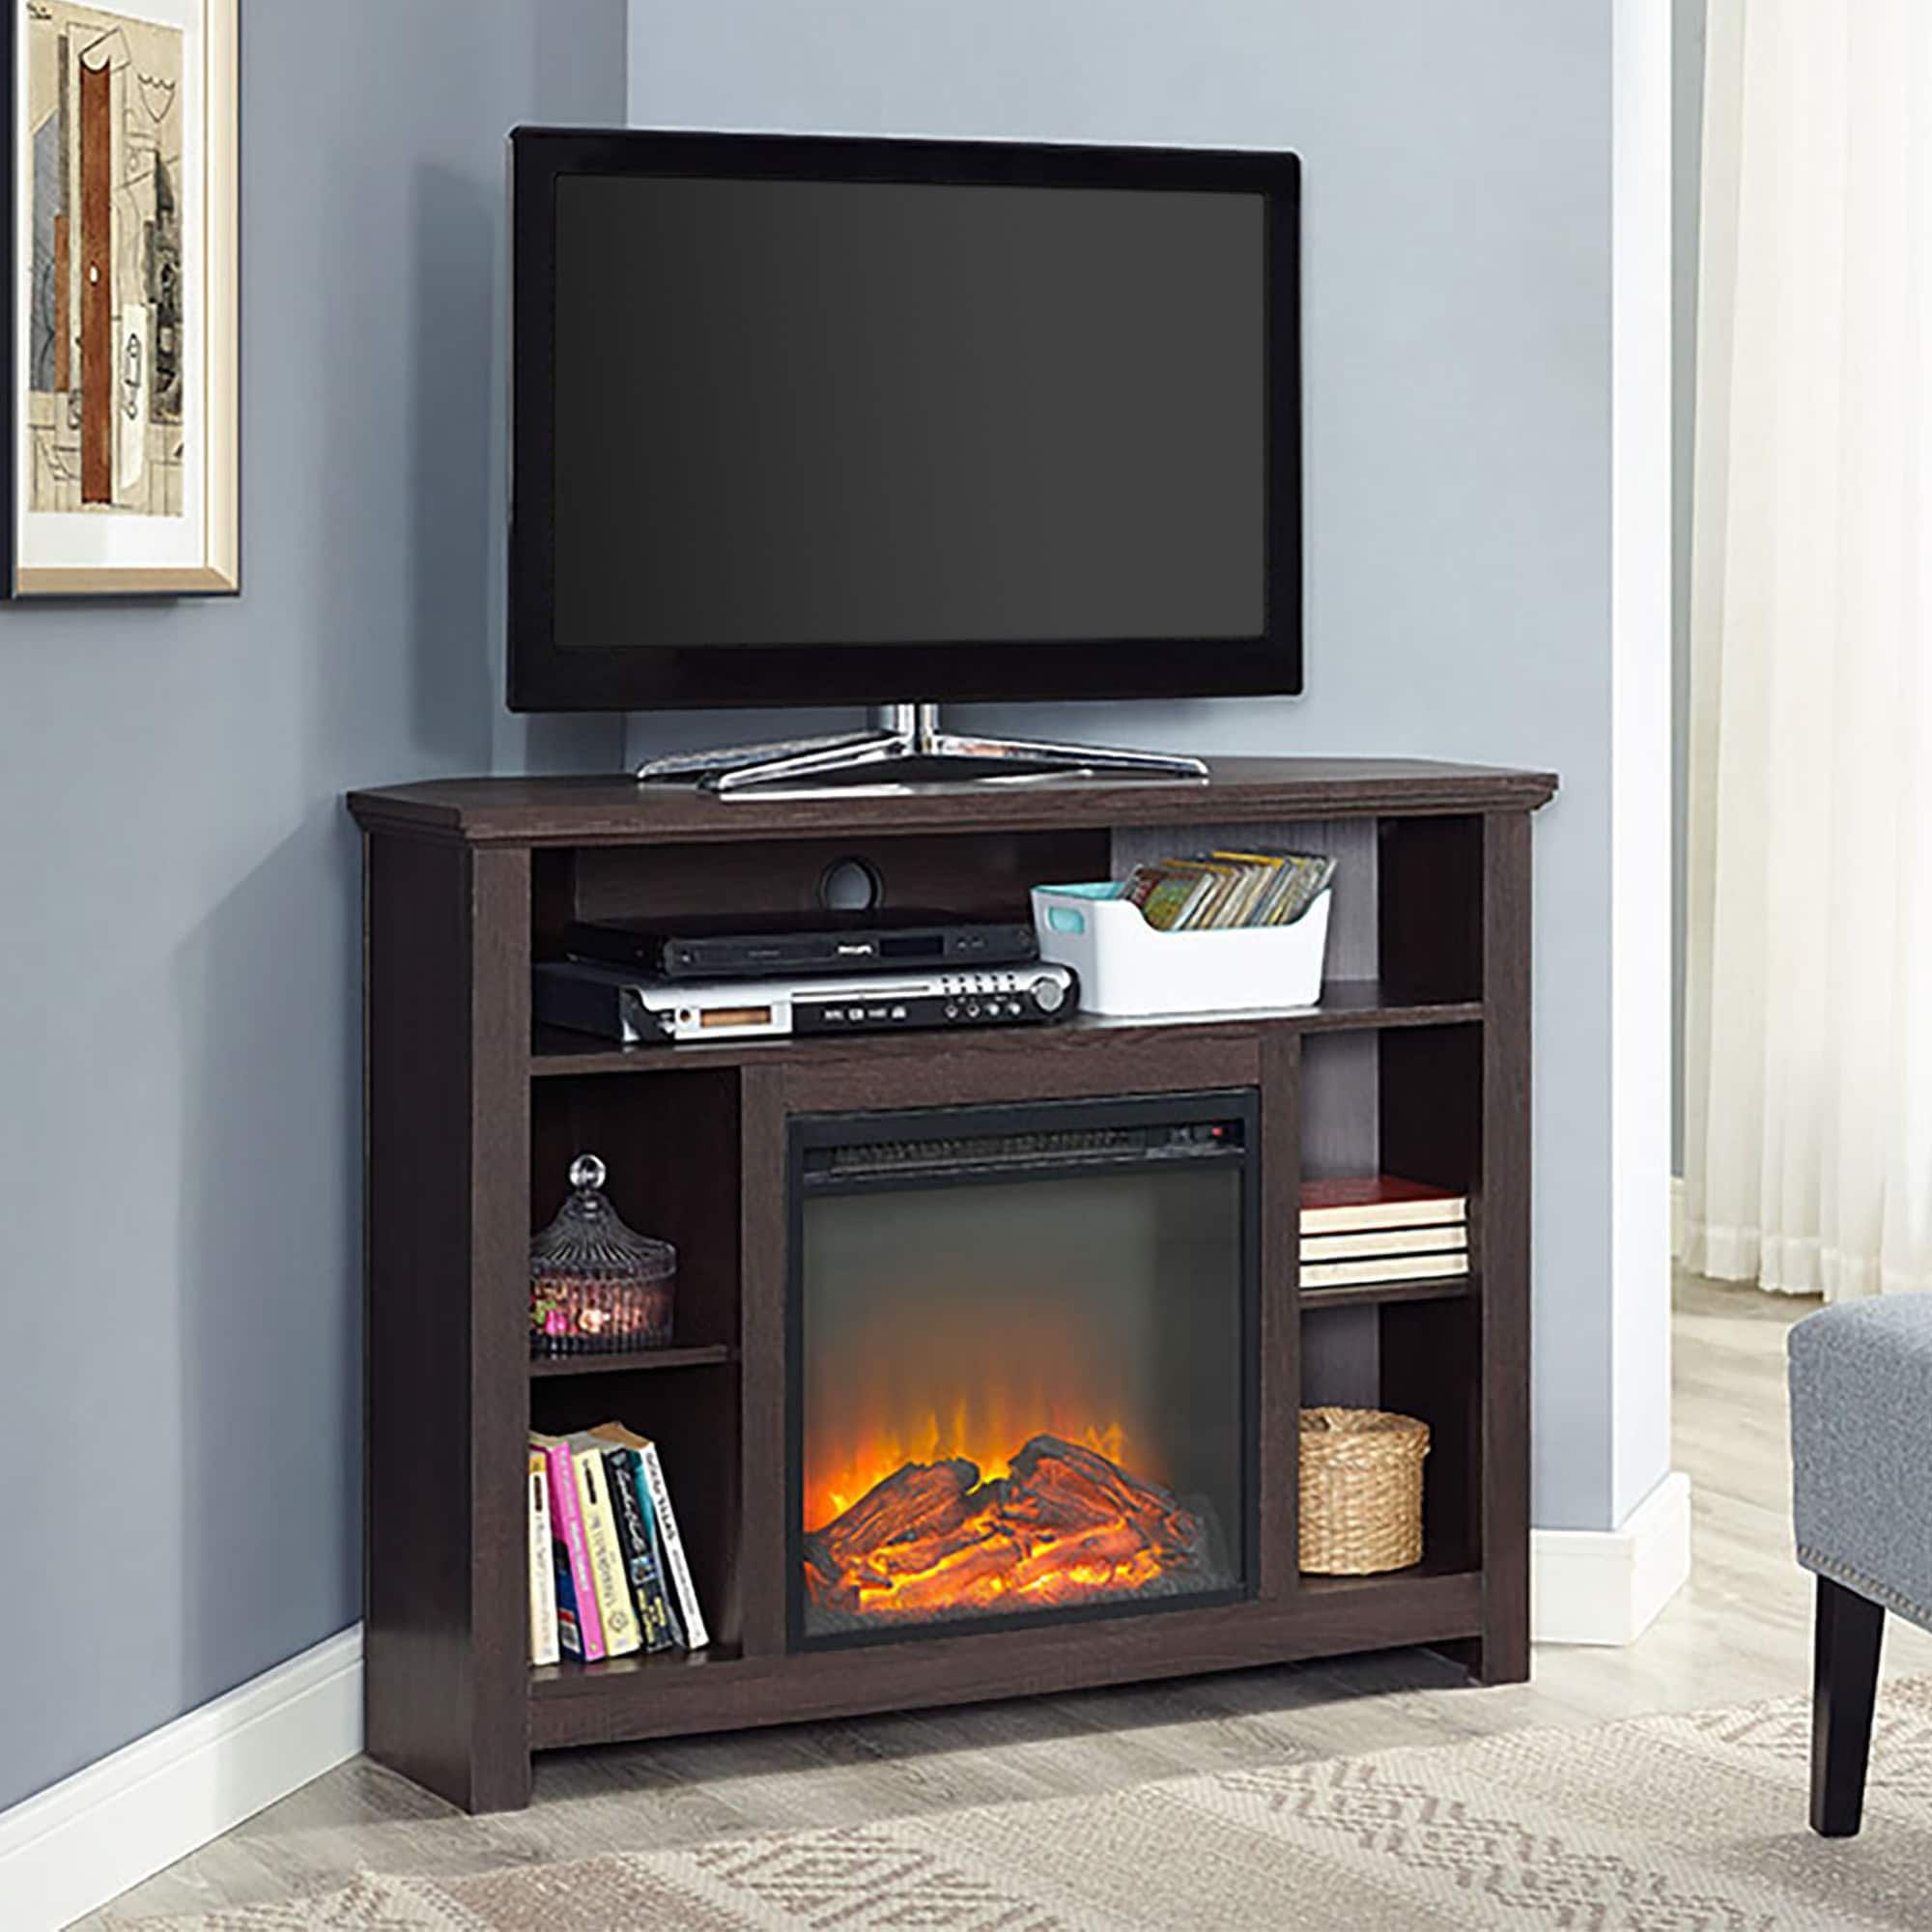 47 Reference Of We Furniture Tv Stand With Mount Corner Fireplace Tv Stand Fireplace Tv Stand Corner Fireplace